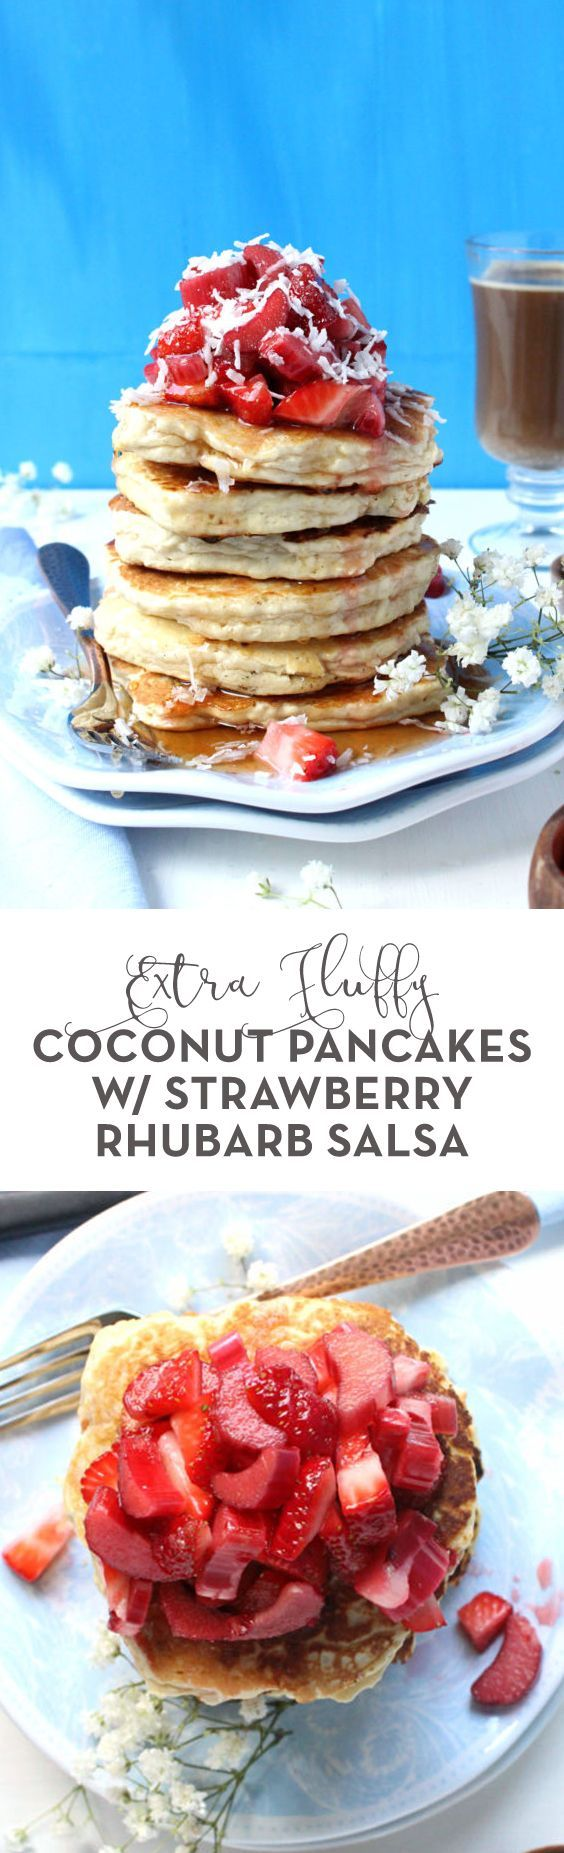 The dessert of breakfasts, these Extra Fluffy Coconut Pancakes w/ Strawberry Rhubarb Salsa taste like coconut cream pie! Deliciously fun and easy. Treat yourself at brunch this weekend.